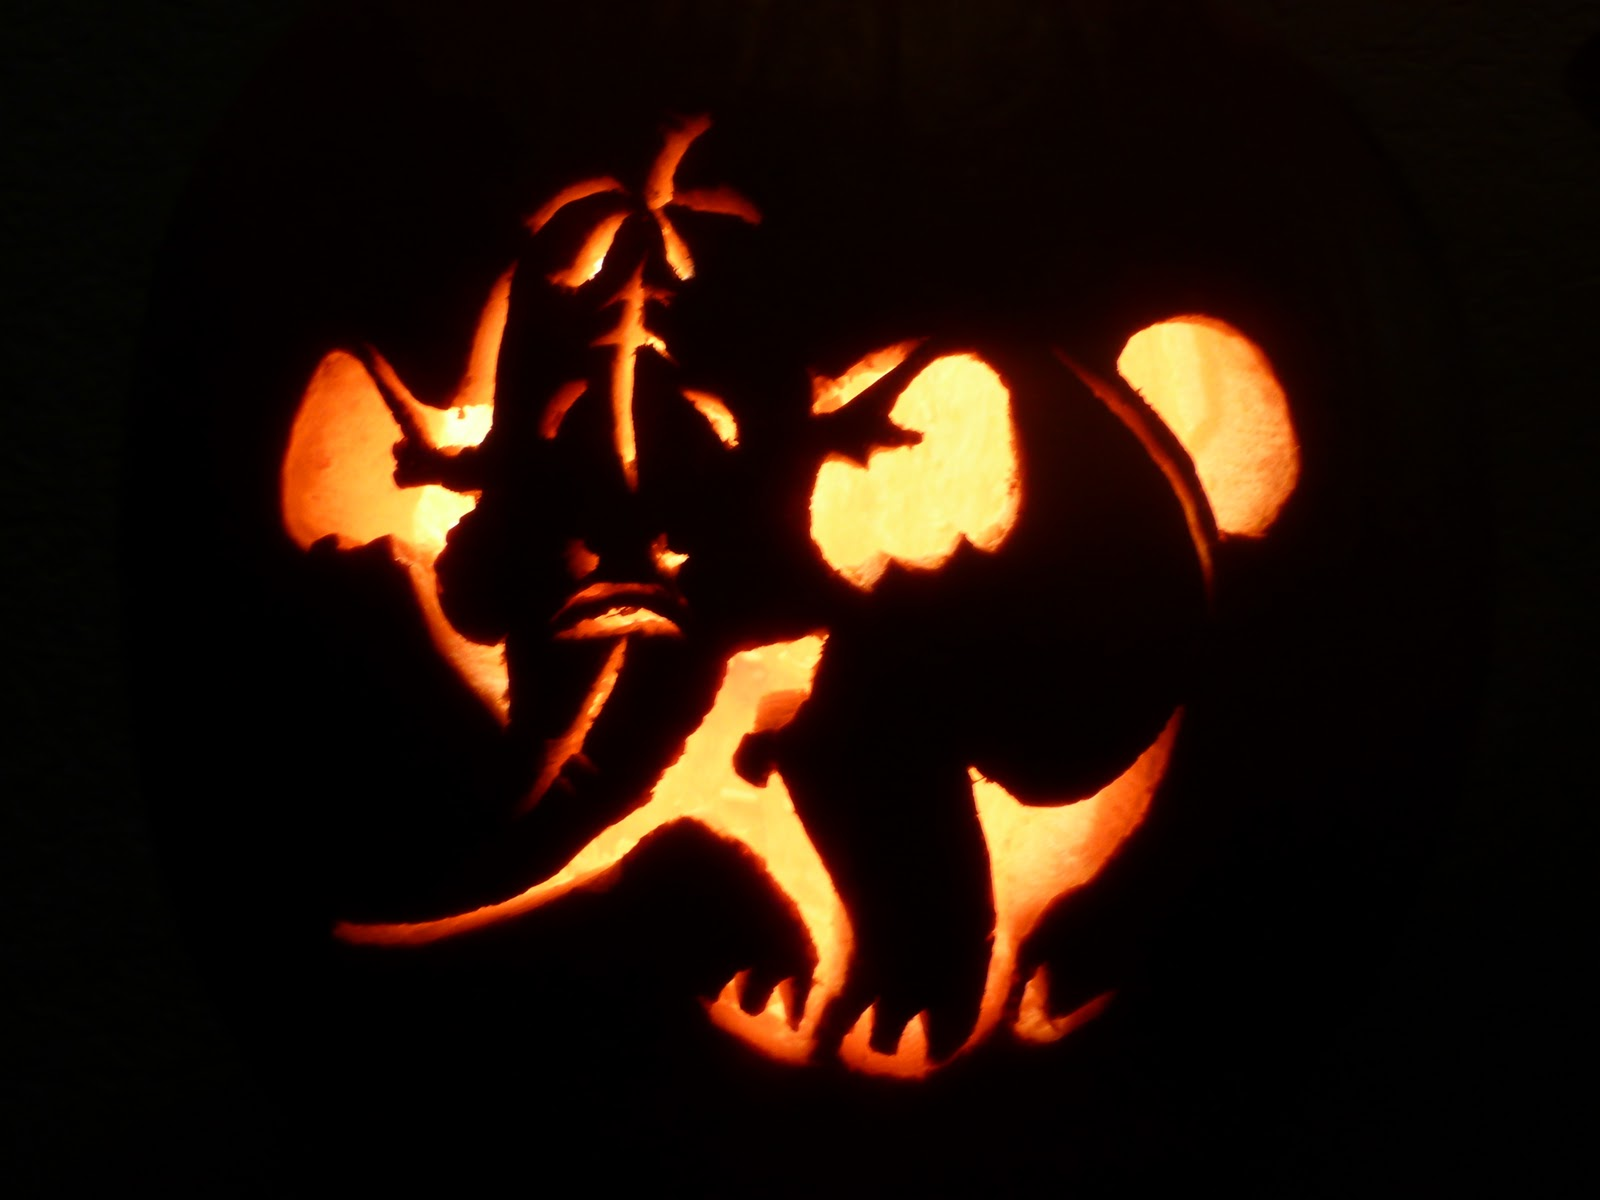 Pumpkin carving templates pumpkin carving winnie the pooh Pumpkin carving designs photos